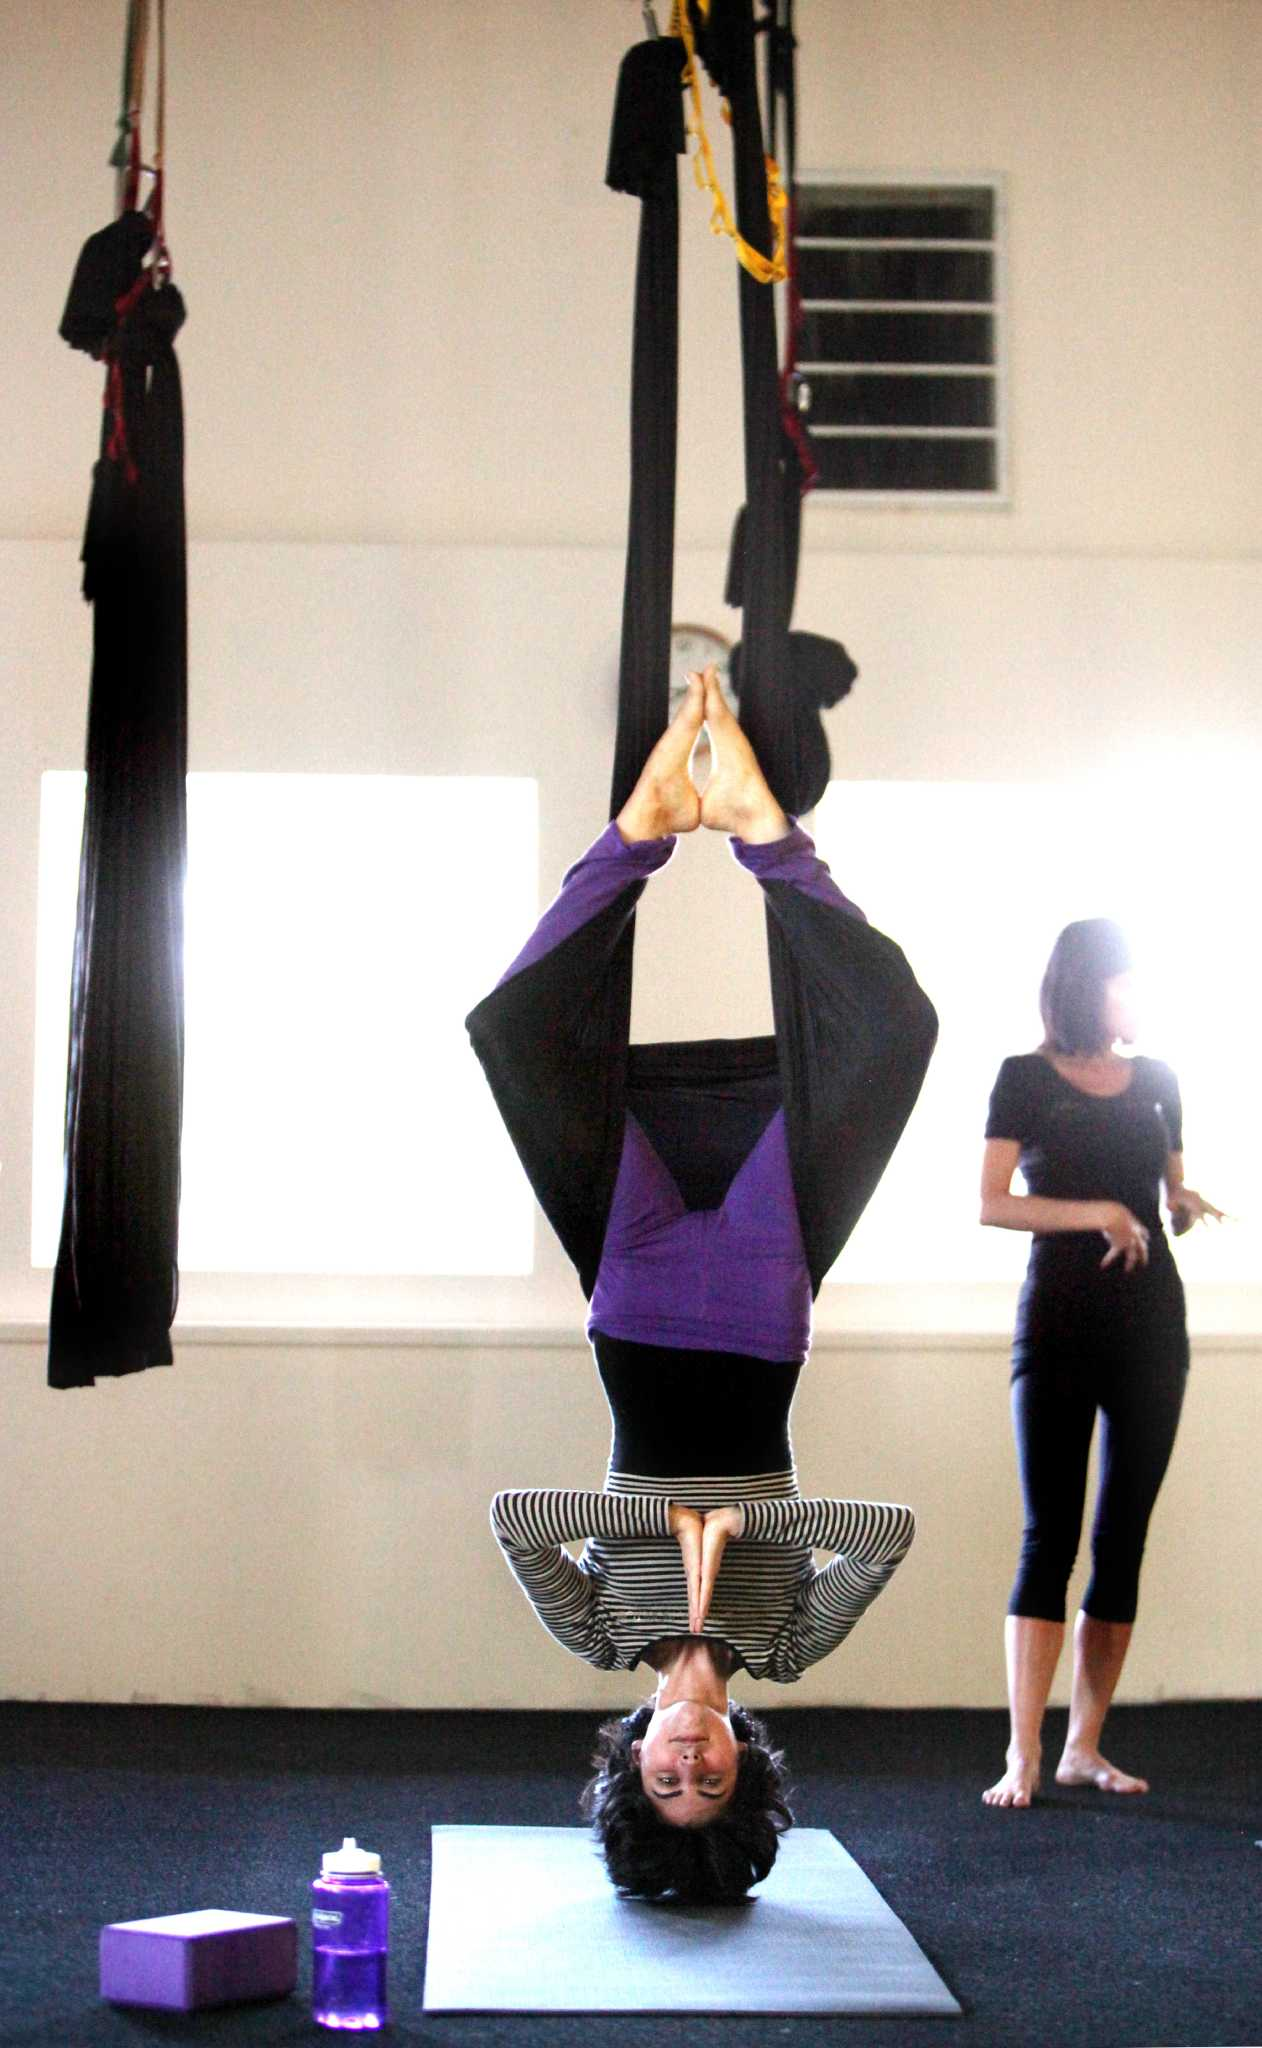 Bmw Of Houston >> Aerial Yoga Houston helps you fly high, stretch long - Houston Chronicle